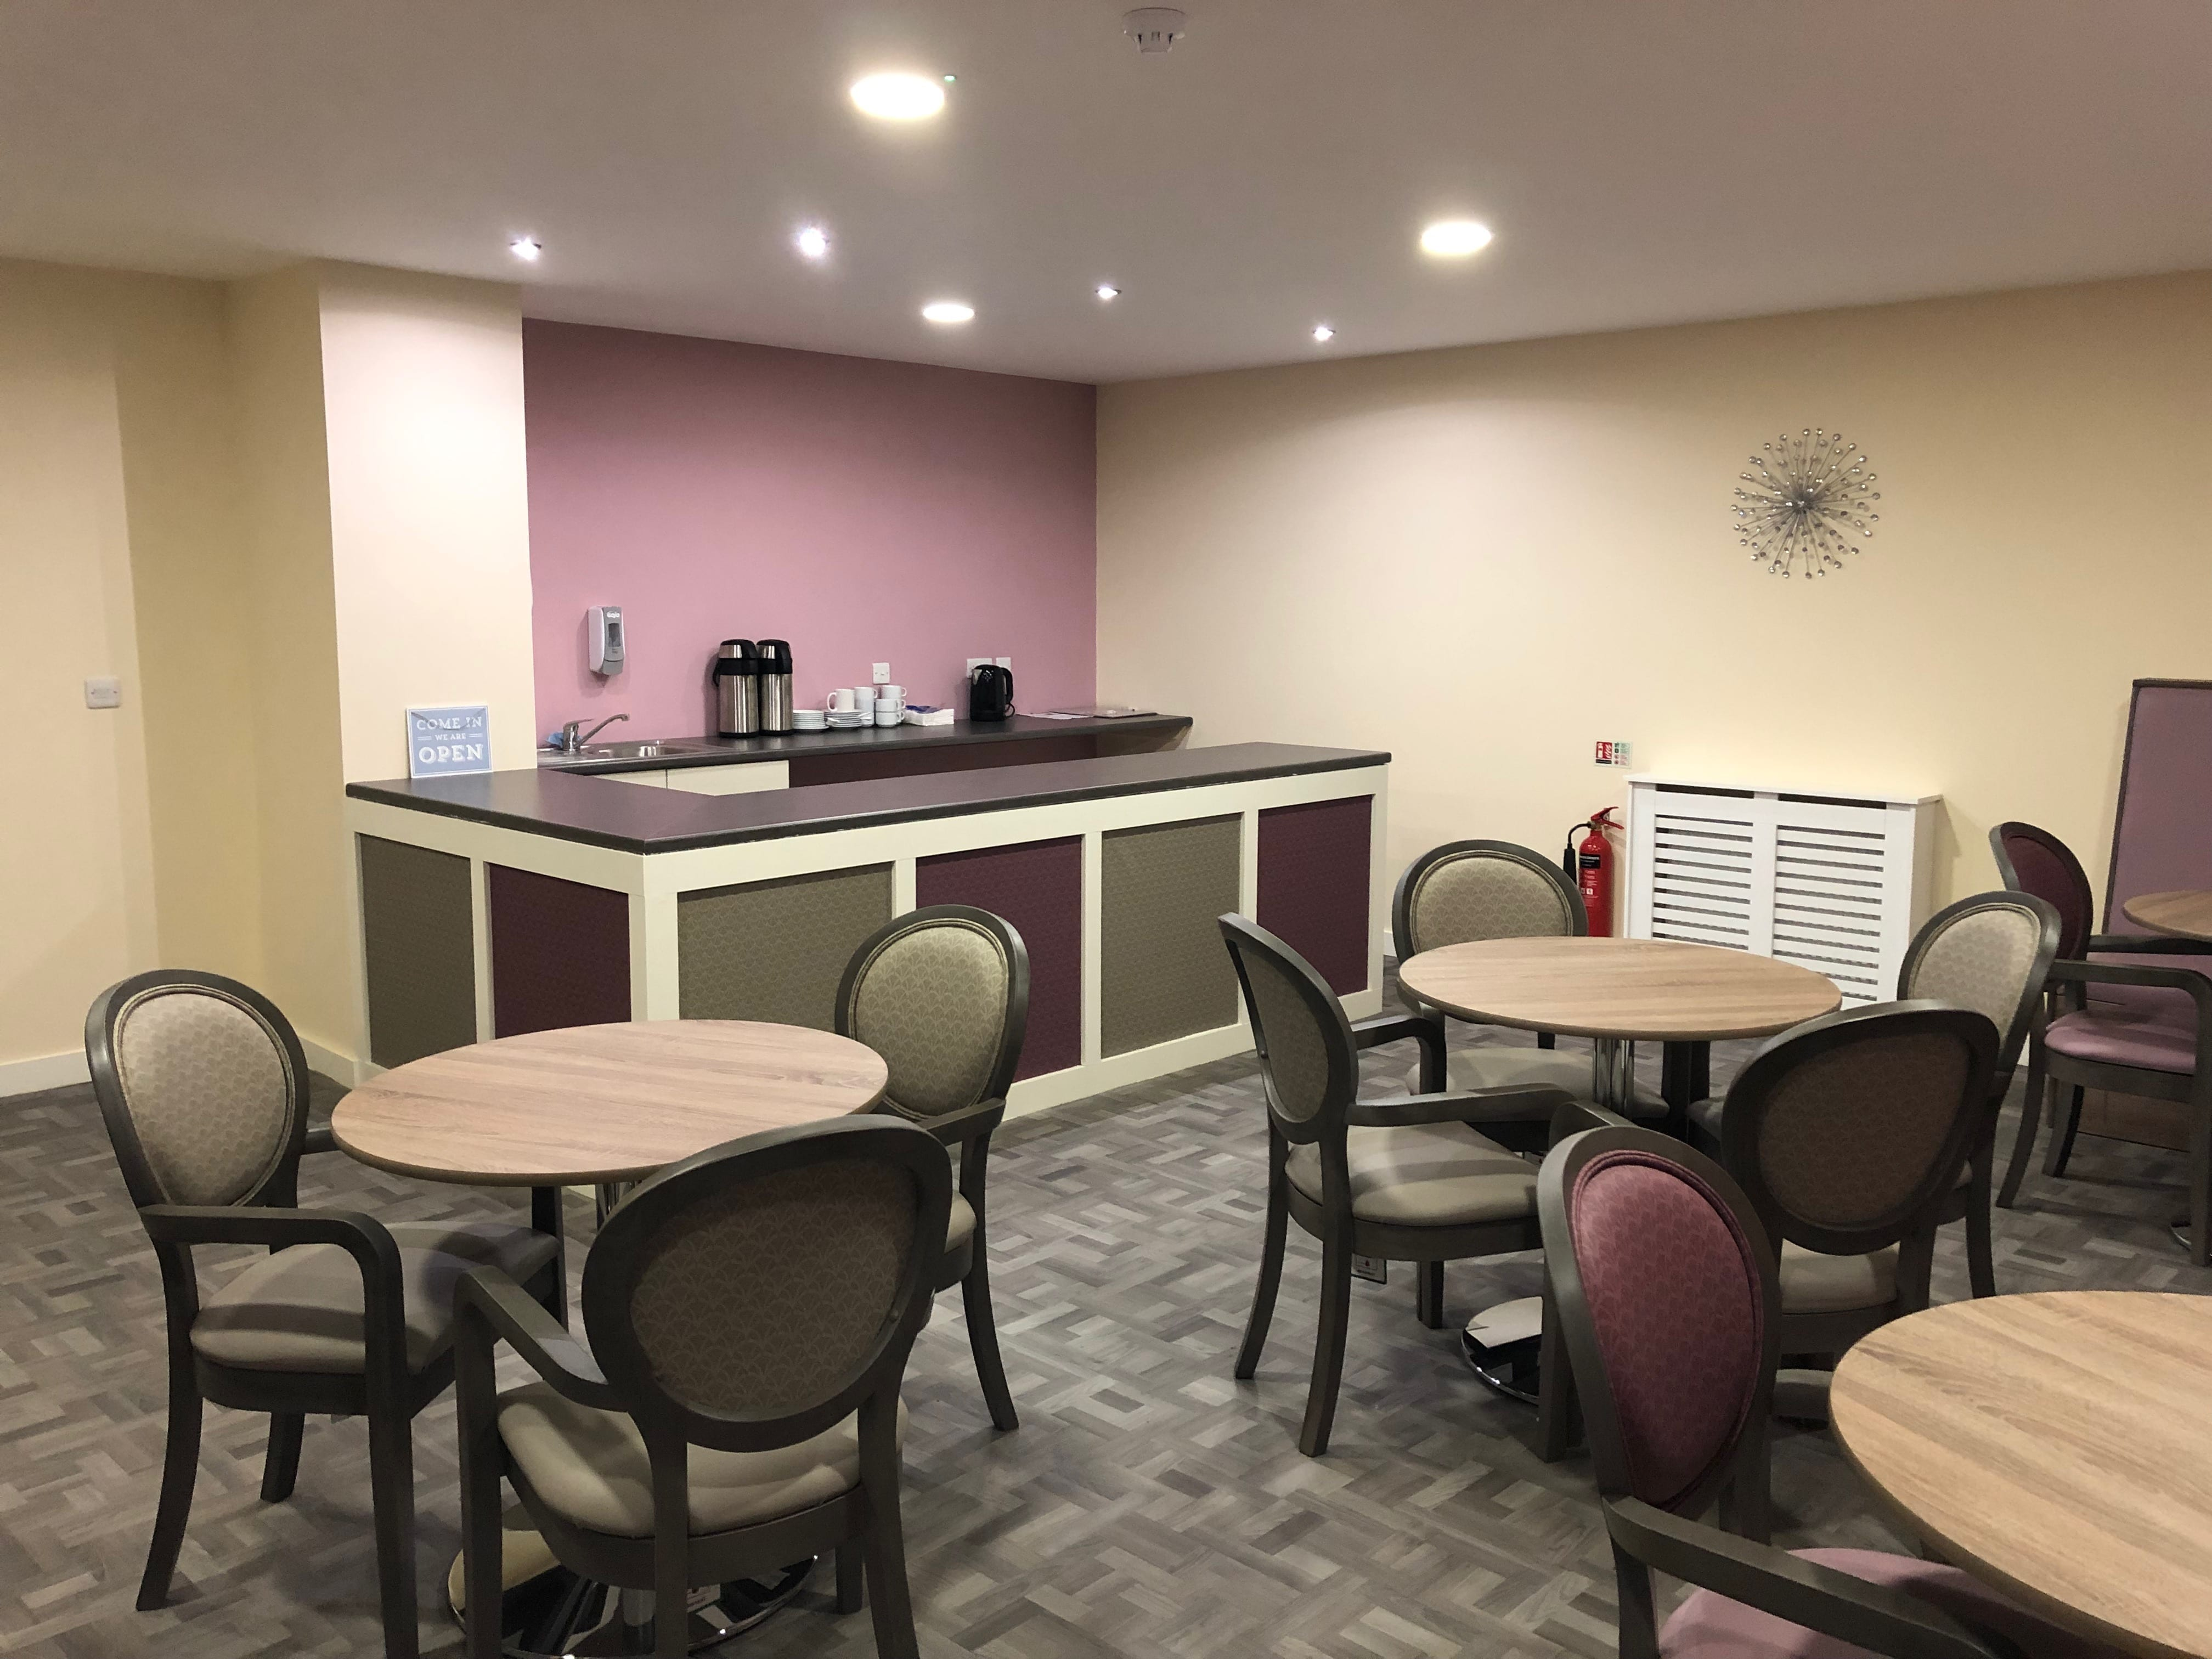 Coffee shop and bar for family and friends of residents aScissett mount care home in Huddersfield